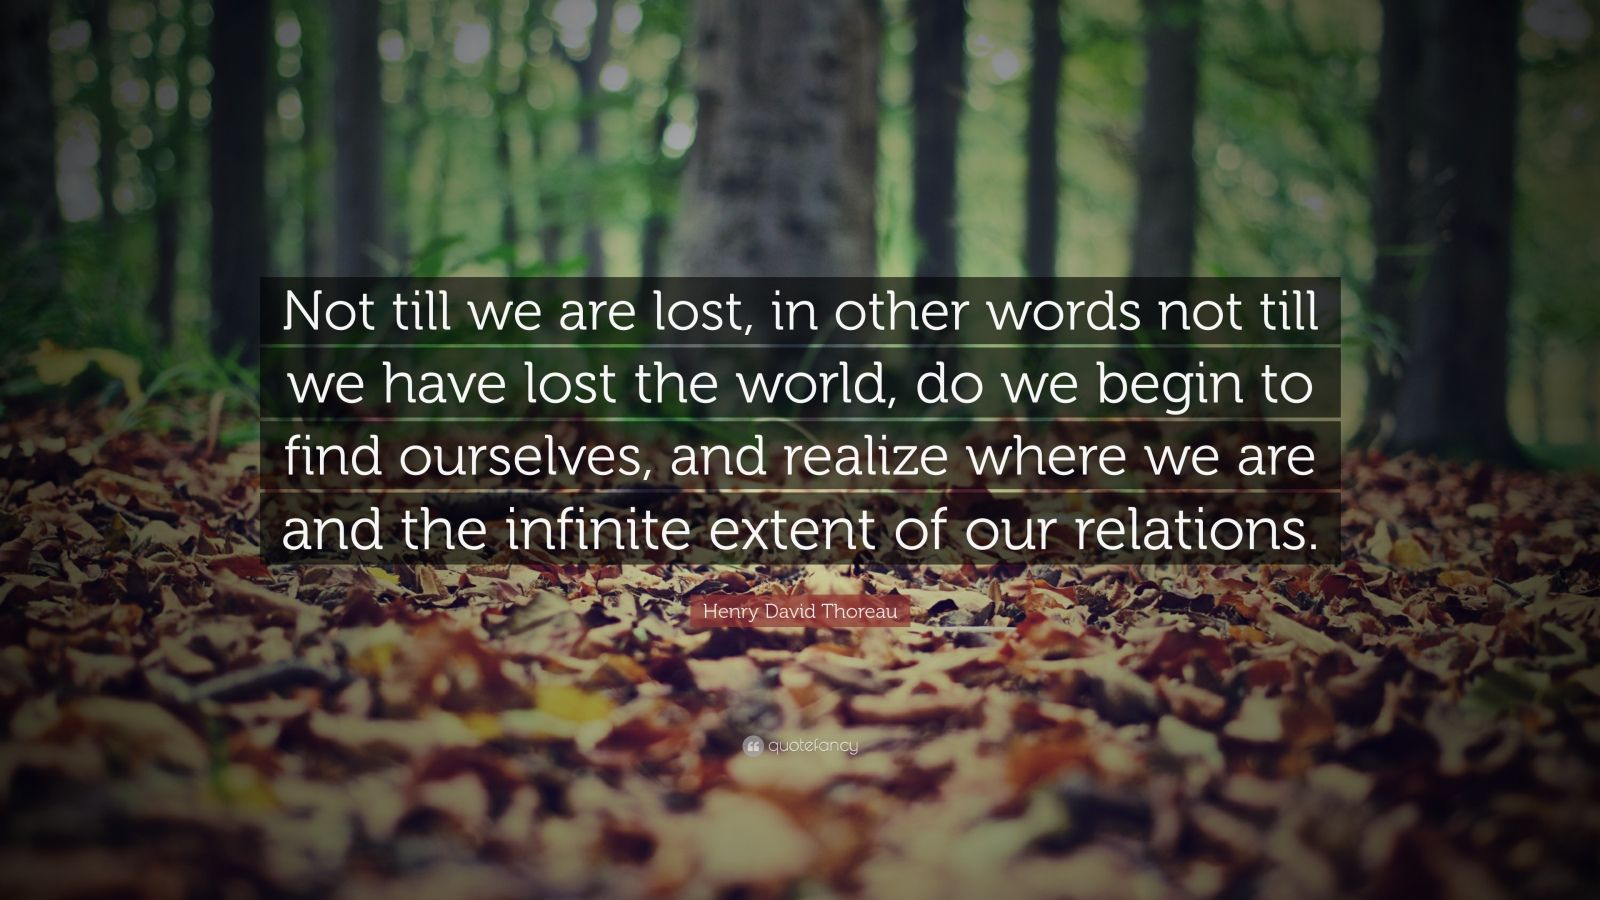 """Henry David Thoreau Quote: """"Not till we are lost, in other words not till we have lost the world, do we begin to find ourselves, and realize where we are and the infinite extent of our relations."""""""